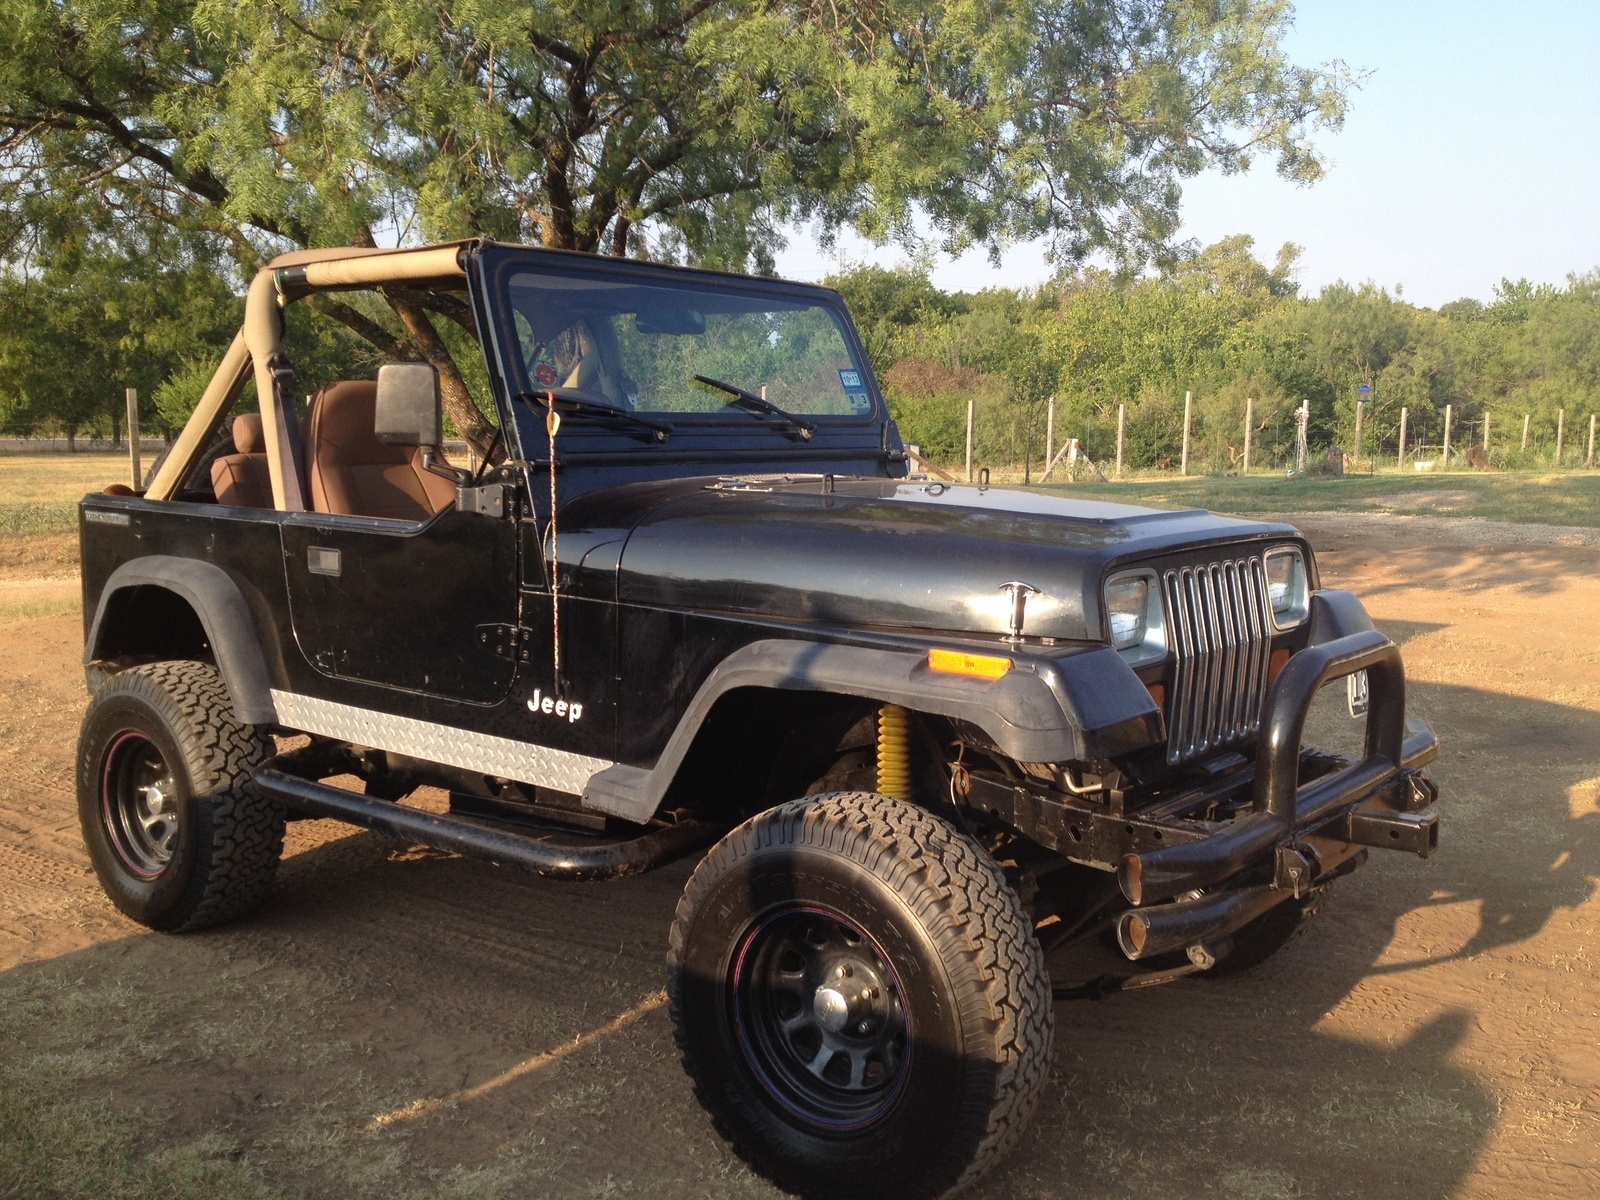 jl wrangler jeep drive first expensive news costs most for sale